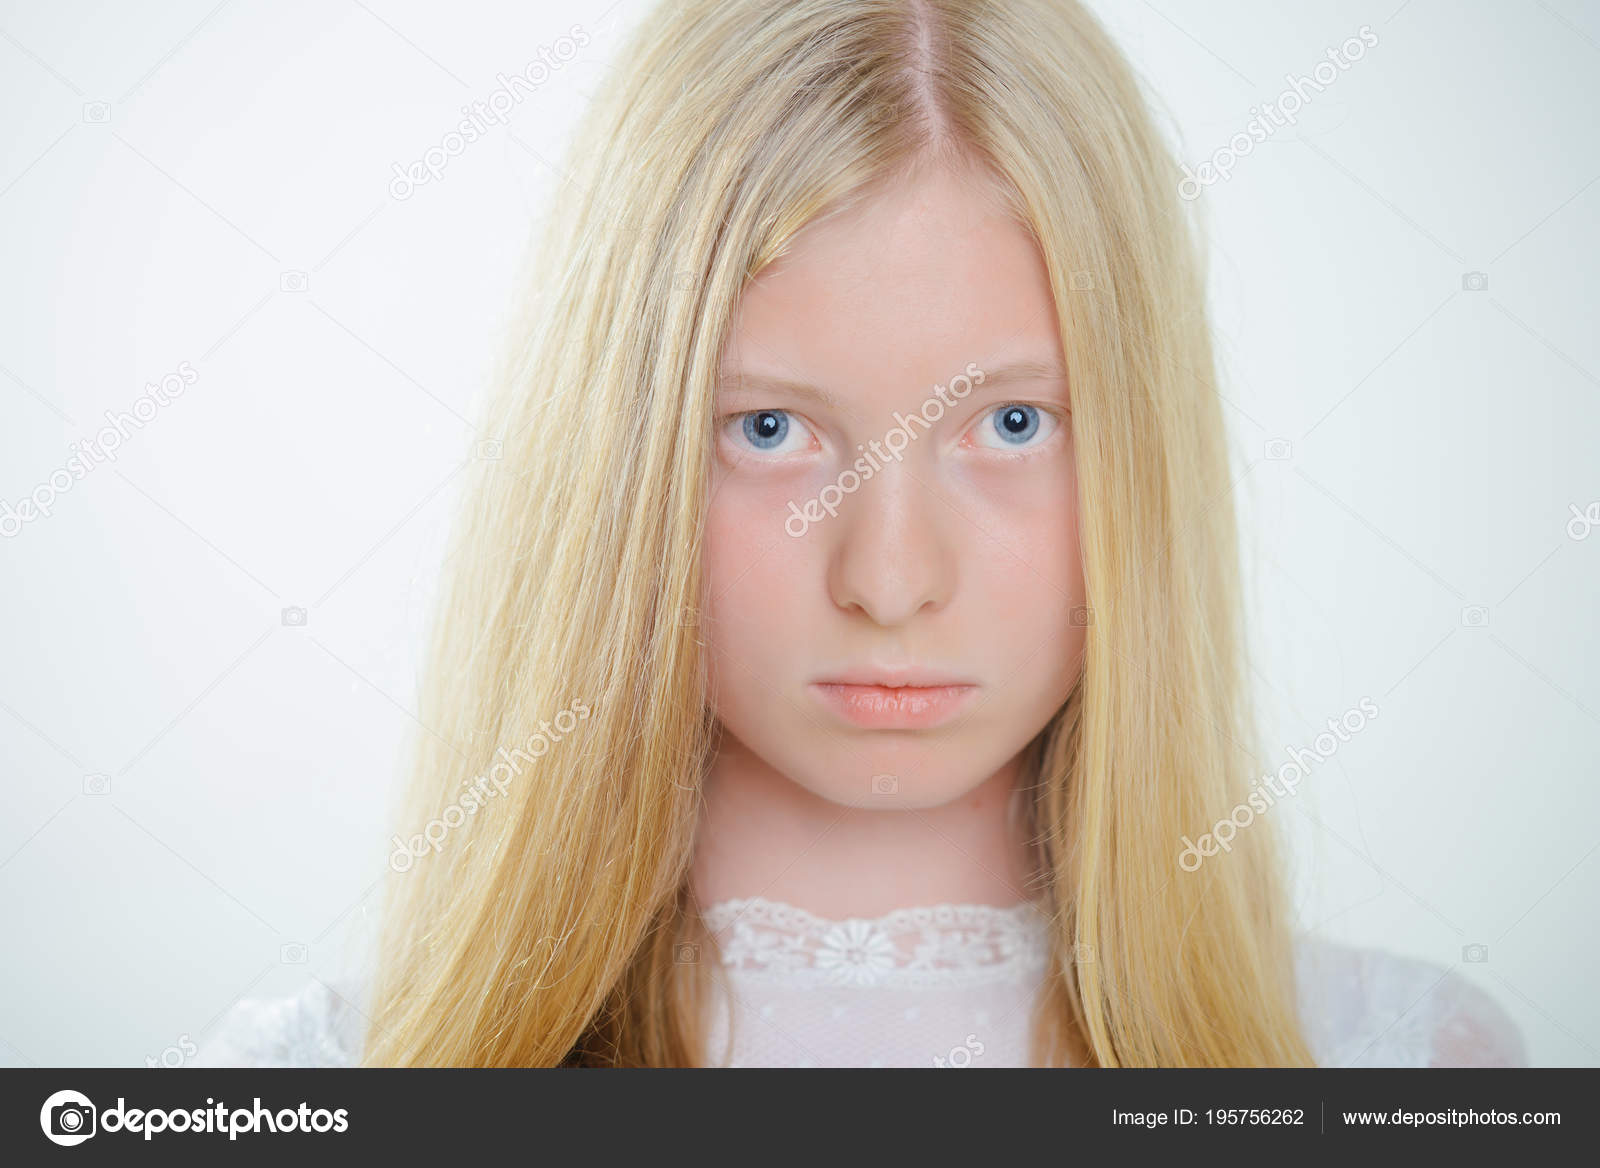 Albino Girl With Blue Eyes And White Skin Woman With Natural Beauty